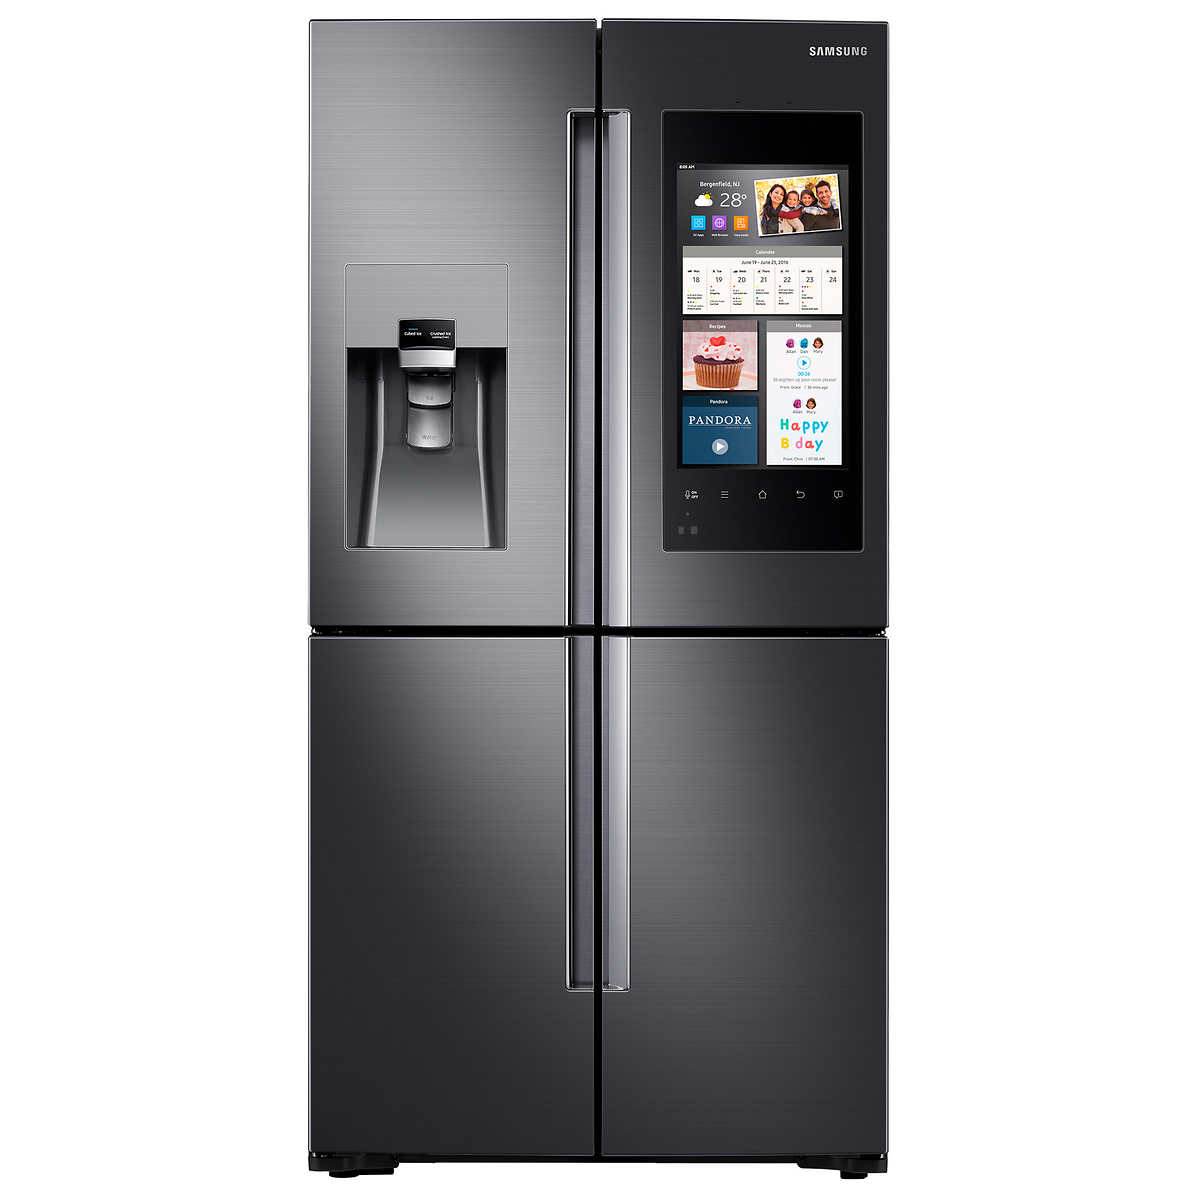 Whirlpool white ice costco - Samsung 22cuft 4 Door French Door Counter Depth Refrigerator With Family Hub In Black